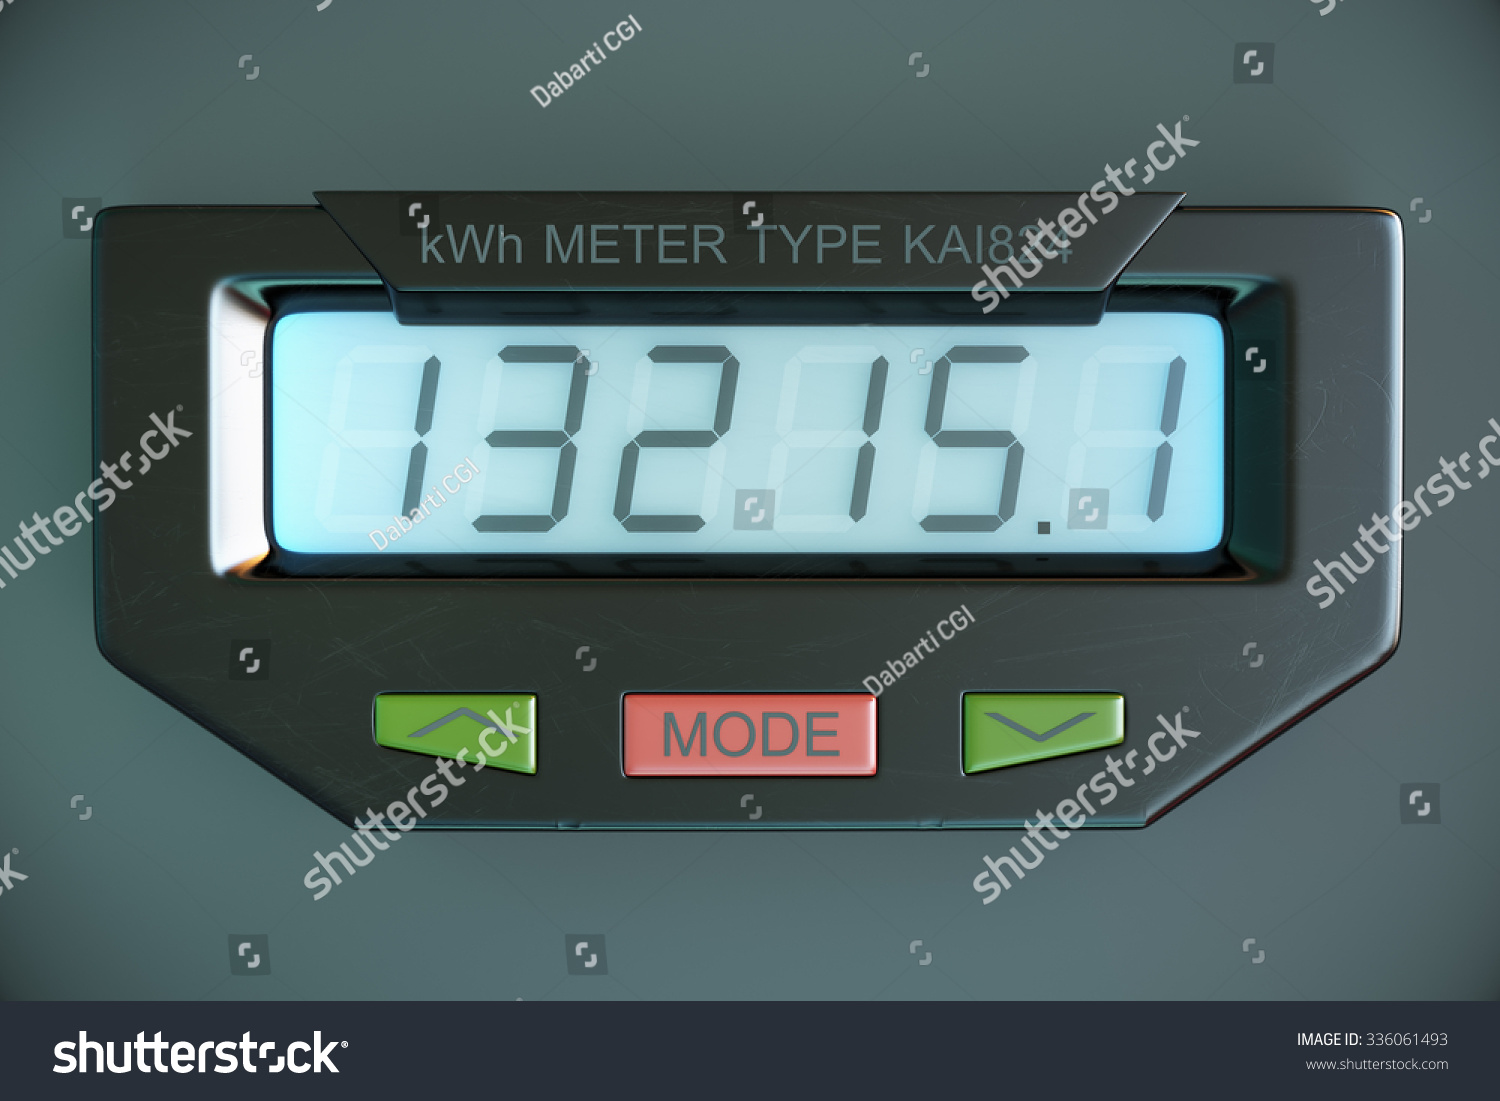 Kilowatt Usage Meter : Digital electricity meter showing household consumption in